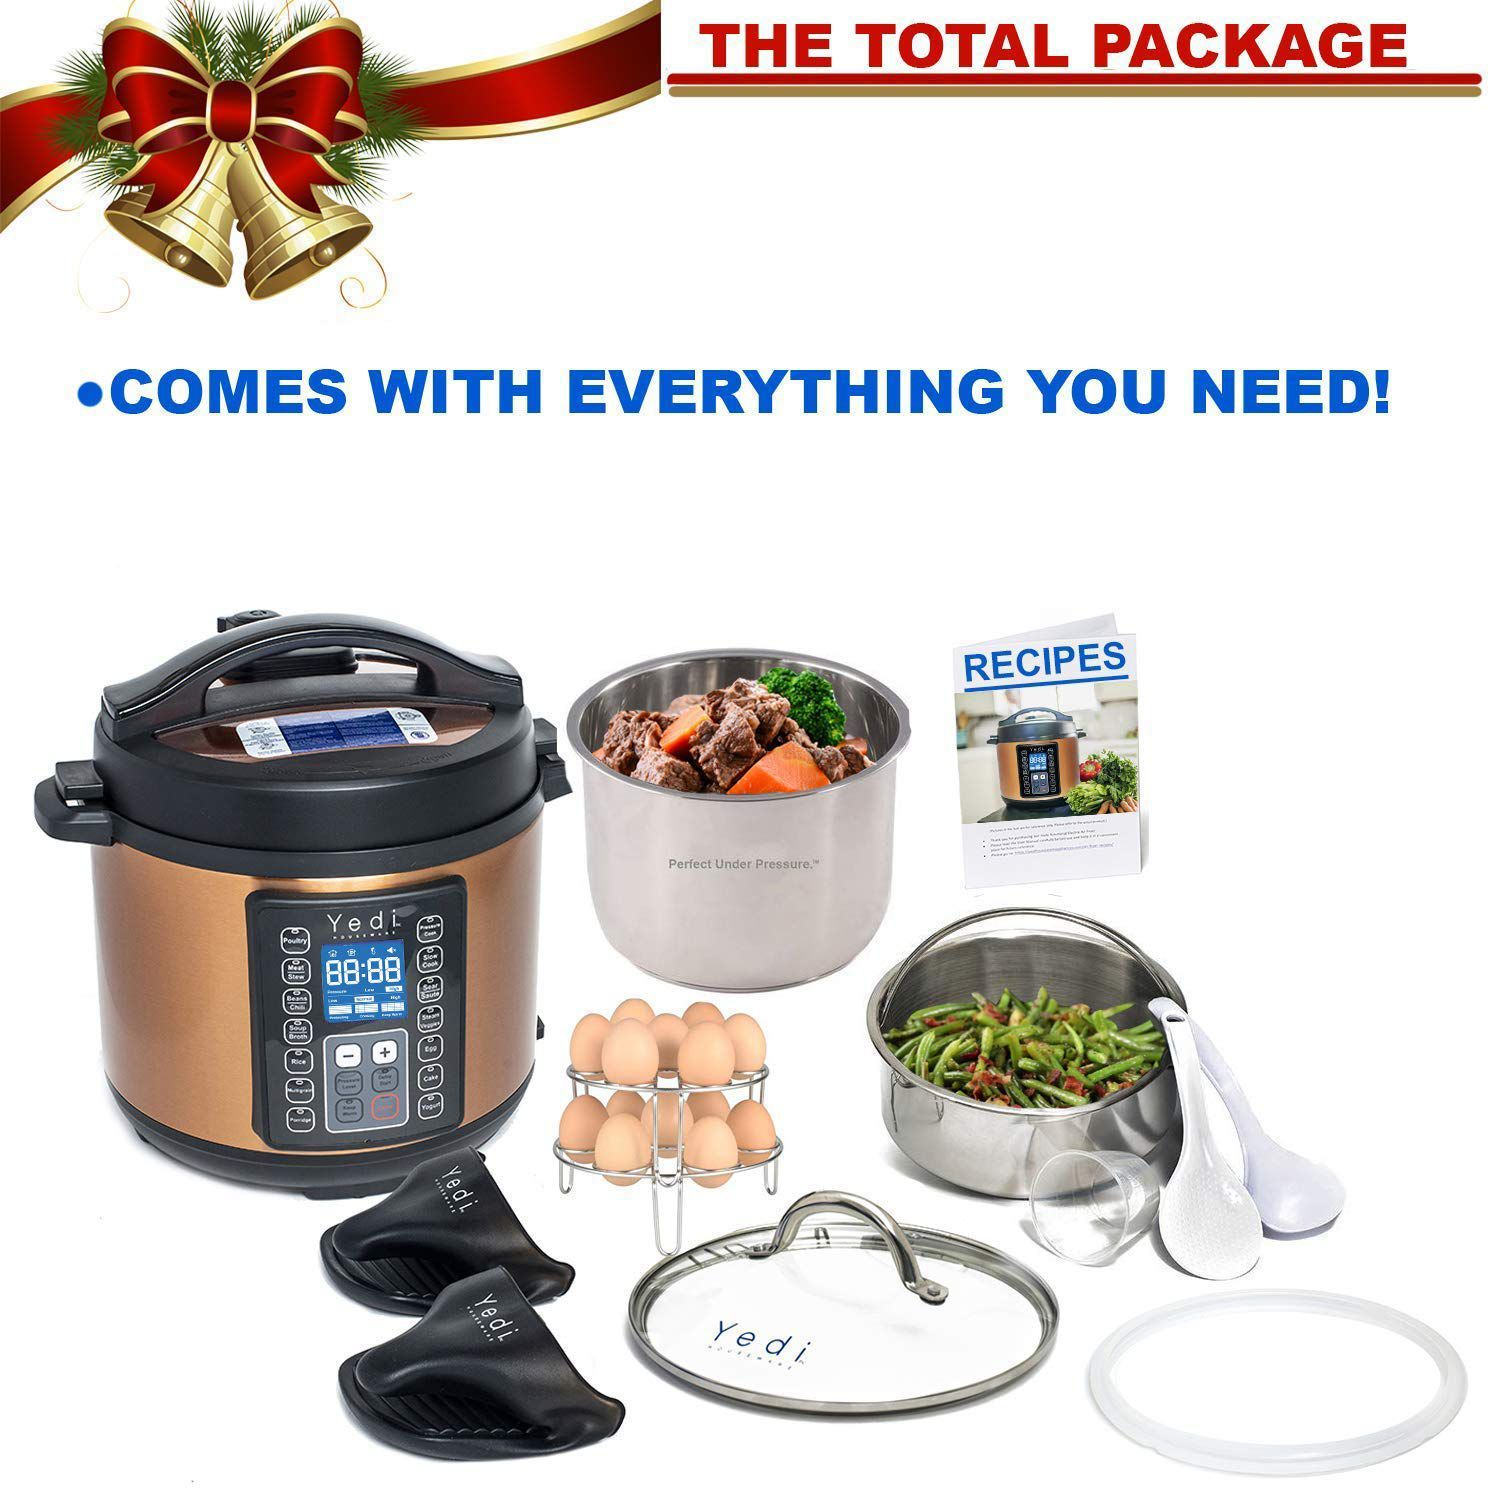 Yedi 6 Qt 9-in-1 Programmable Instant Pressure Cooker, with Deluxe Accessory Kit (Copper) - image 4 of 5